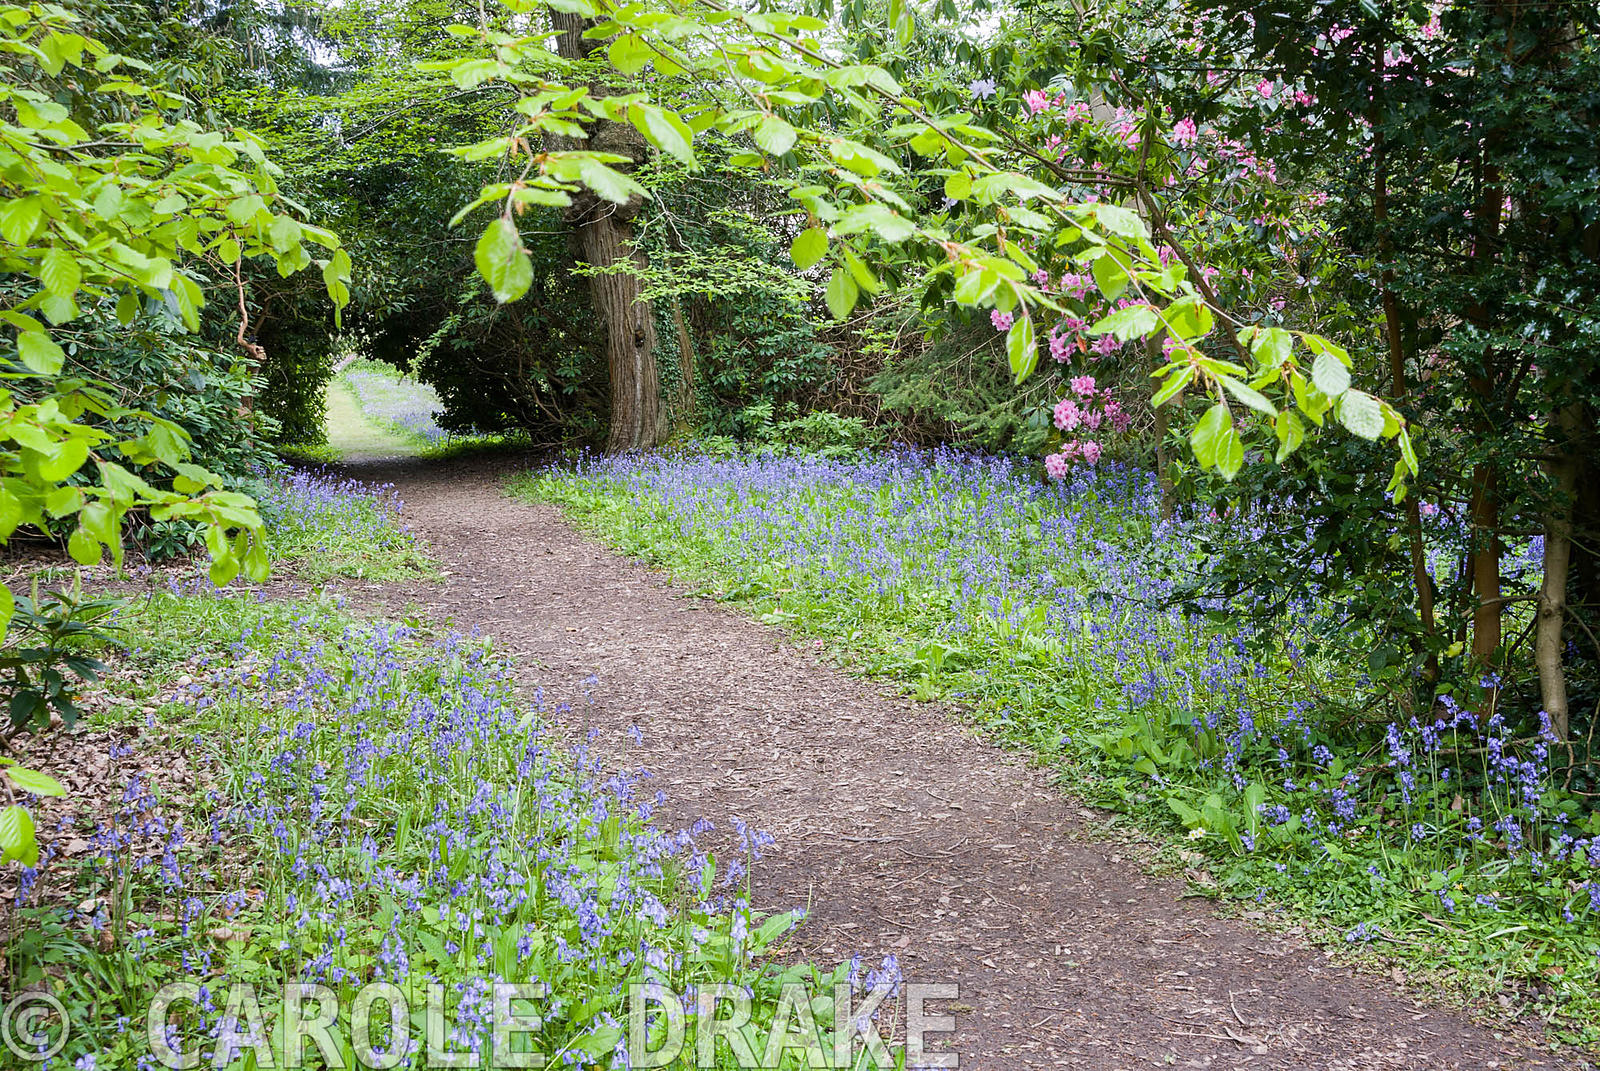 Path through bluebell covered ground. Enys Gardens, St Gluvias, Penryn, Cornwall, UK